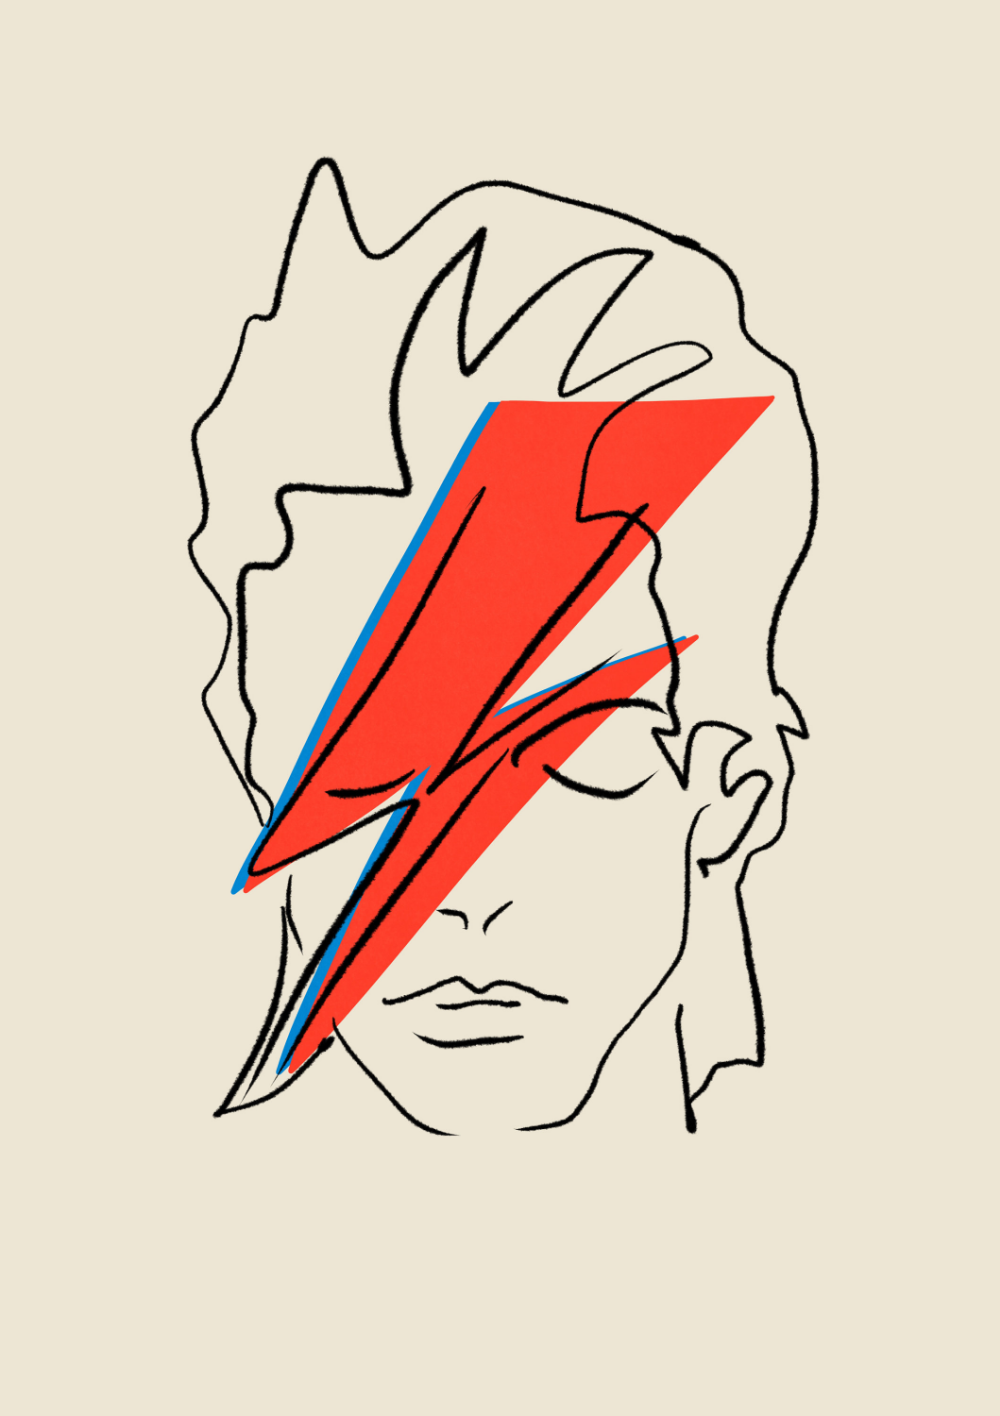 Photo of David Bowie POSTER | Music Poster, Home Decor, Wall Art, Bowie Poster, Bowie, David Bowie, David Bowie Print, Art Ziggy Stardust